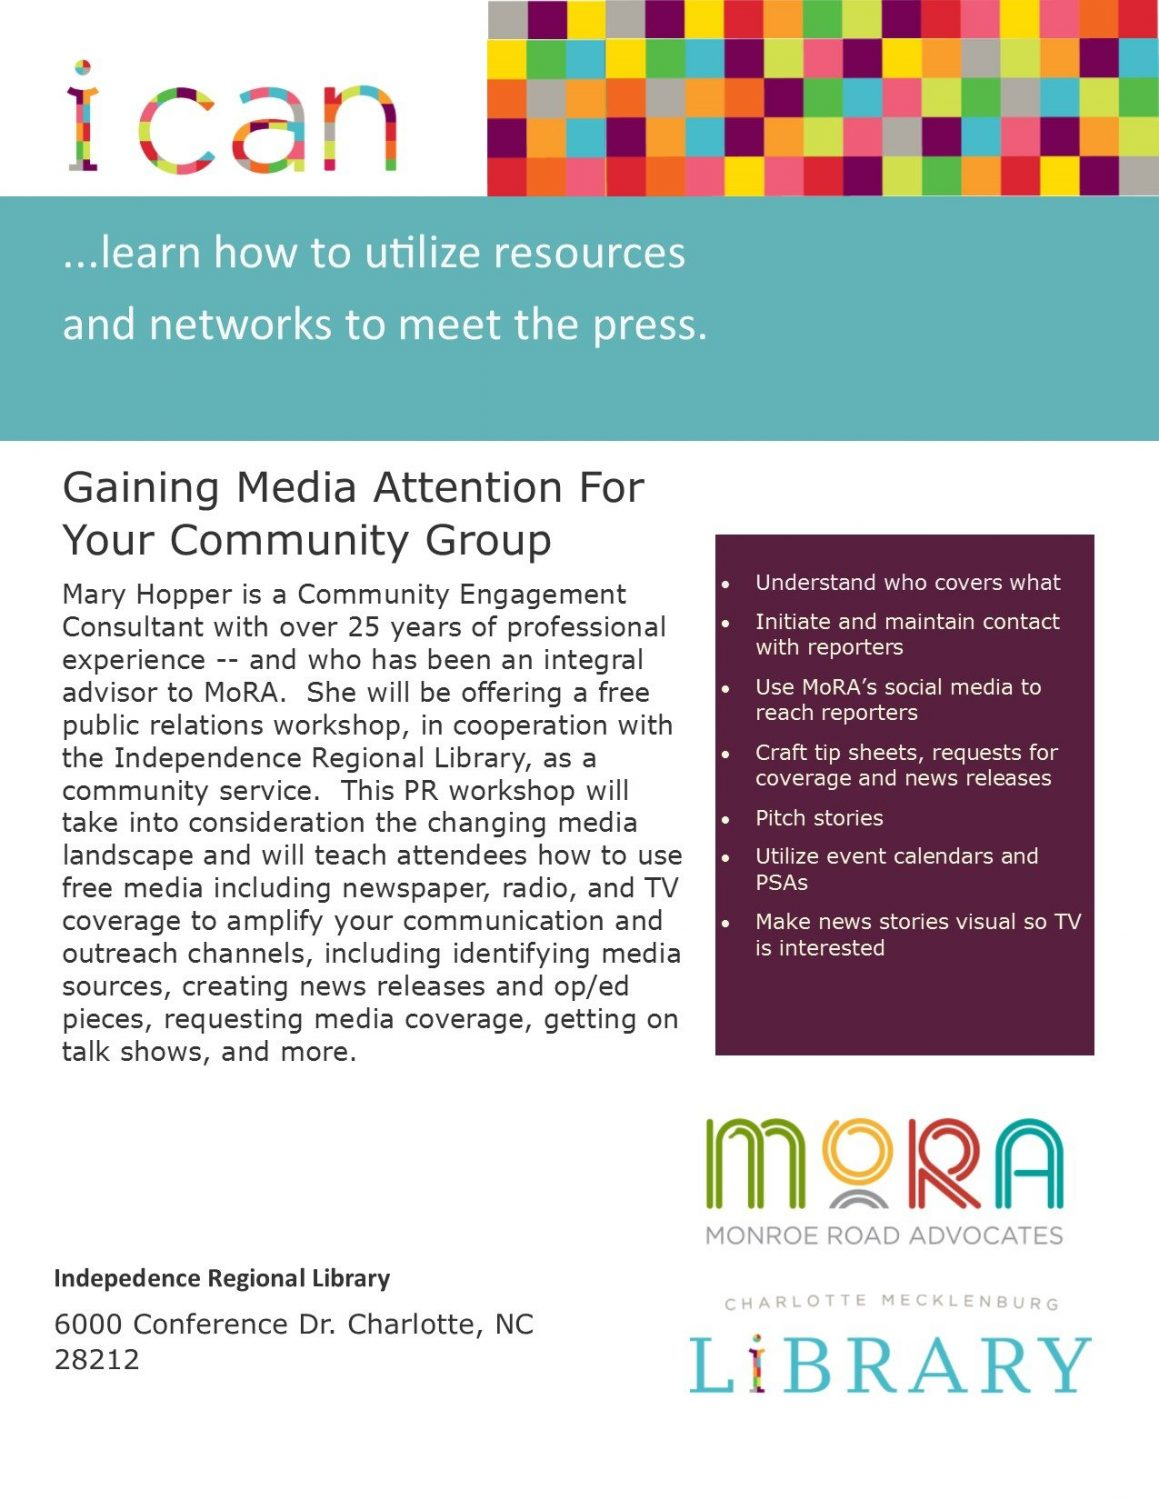 PR workshop for your community group